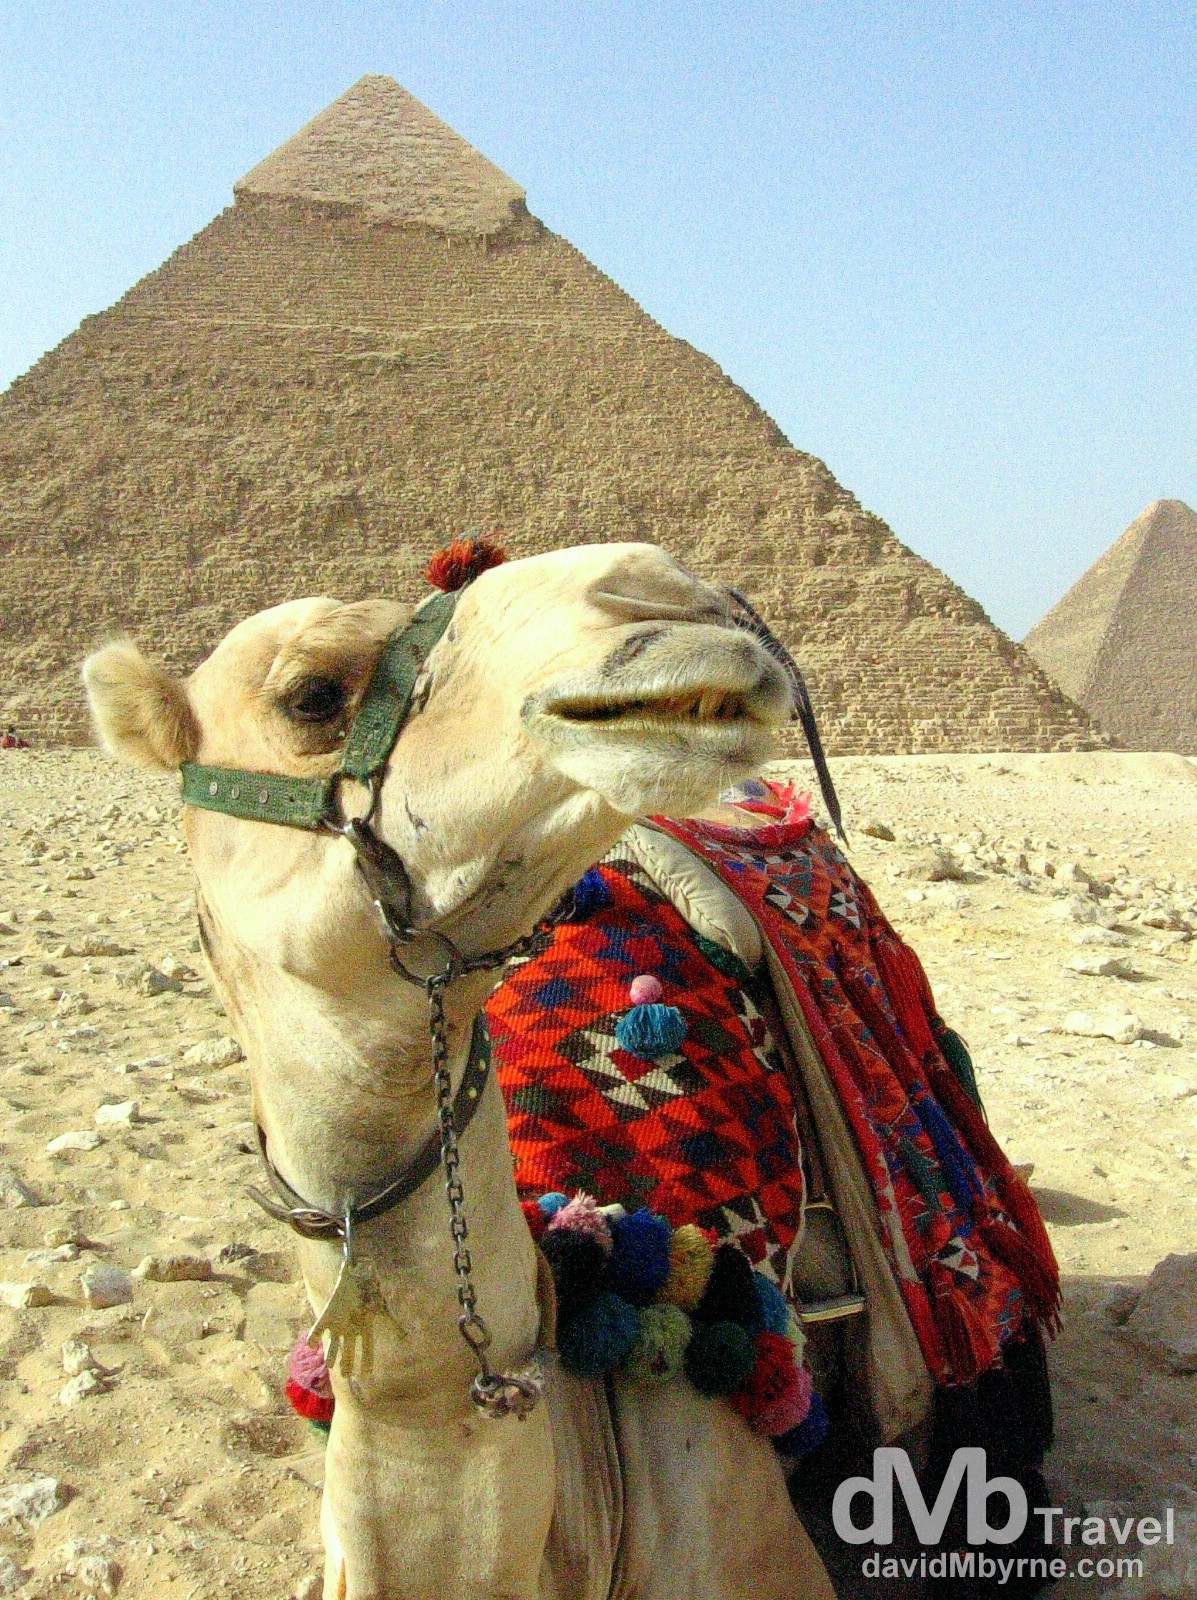 A camel on The Giza Plateau, Egypt. April 13th 2008.